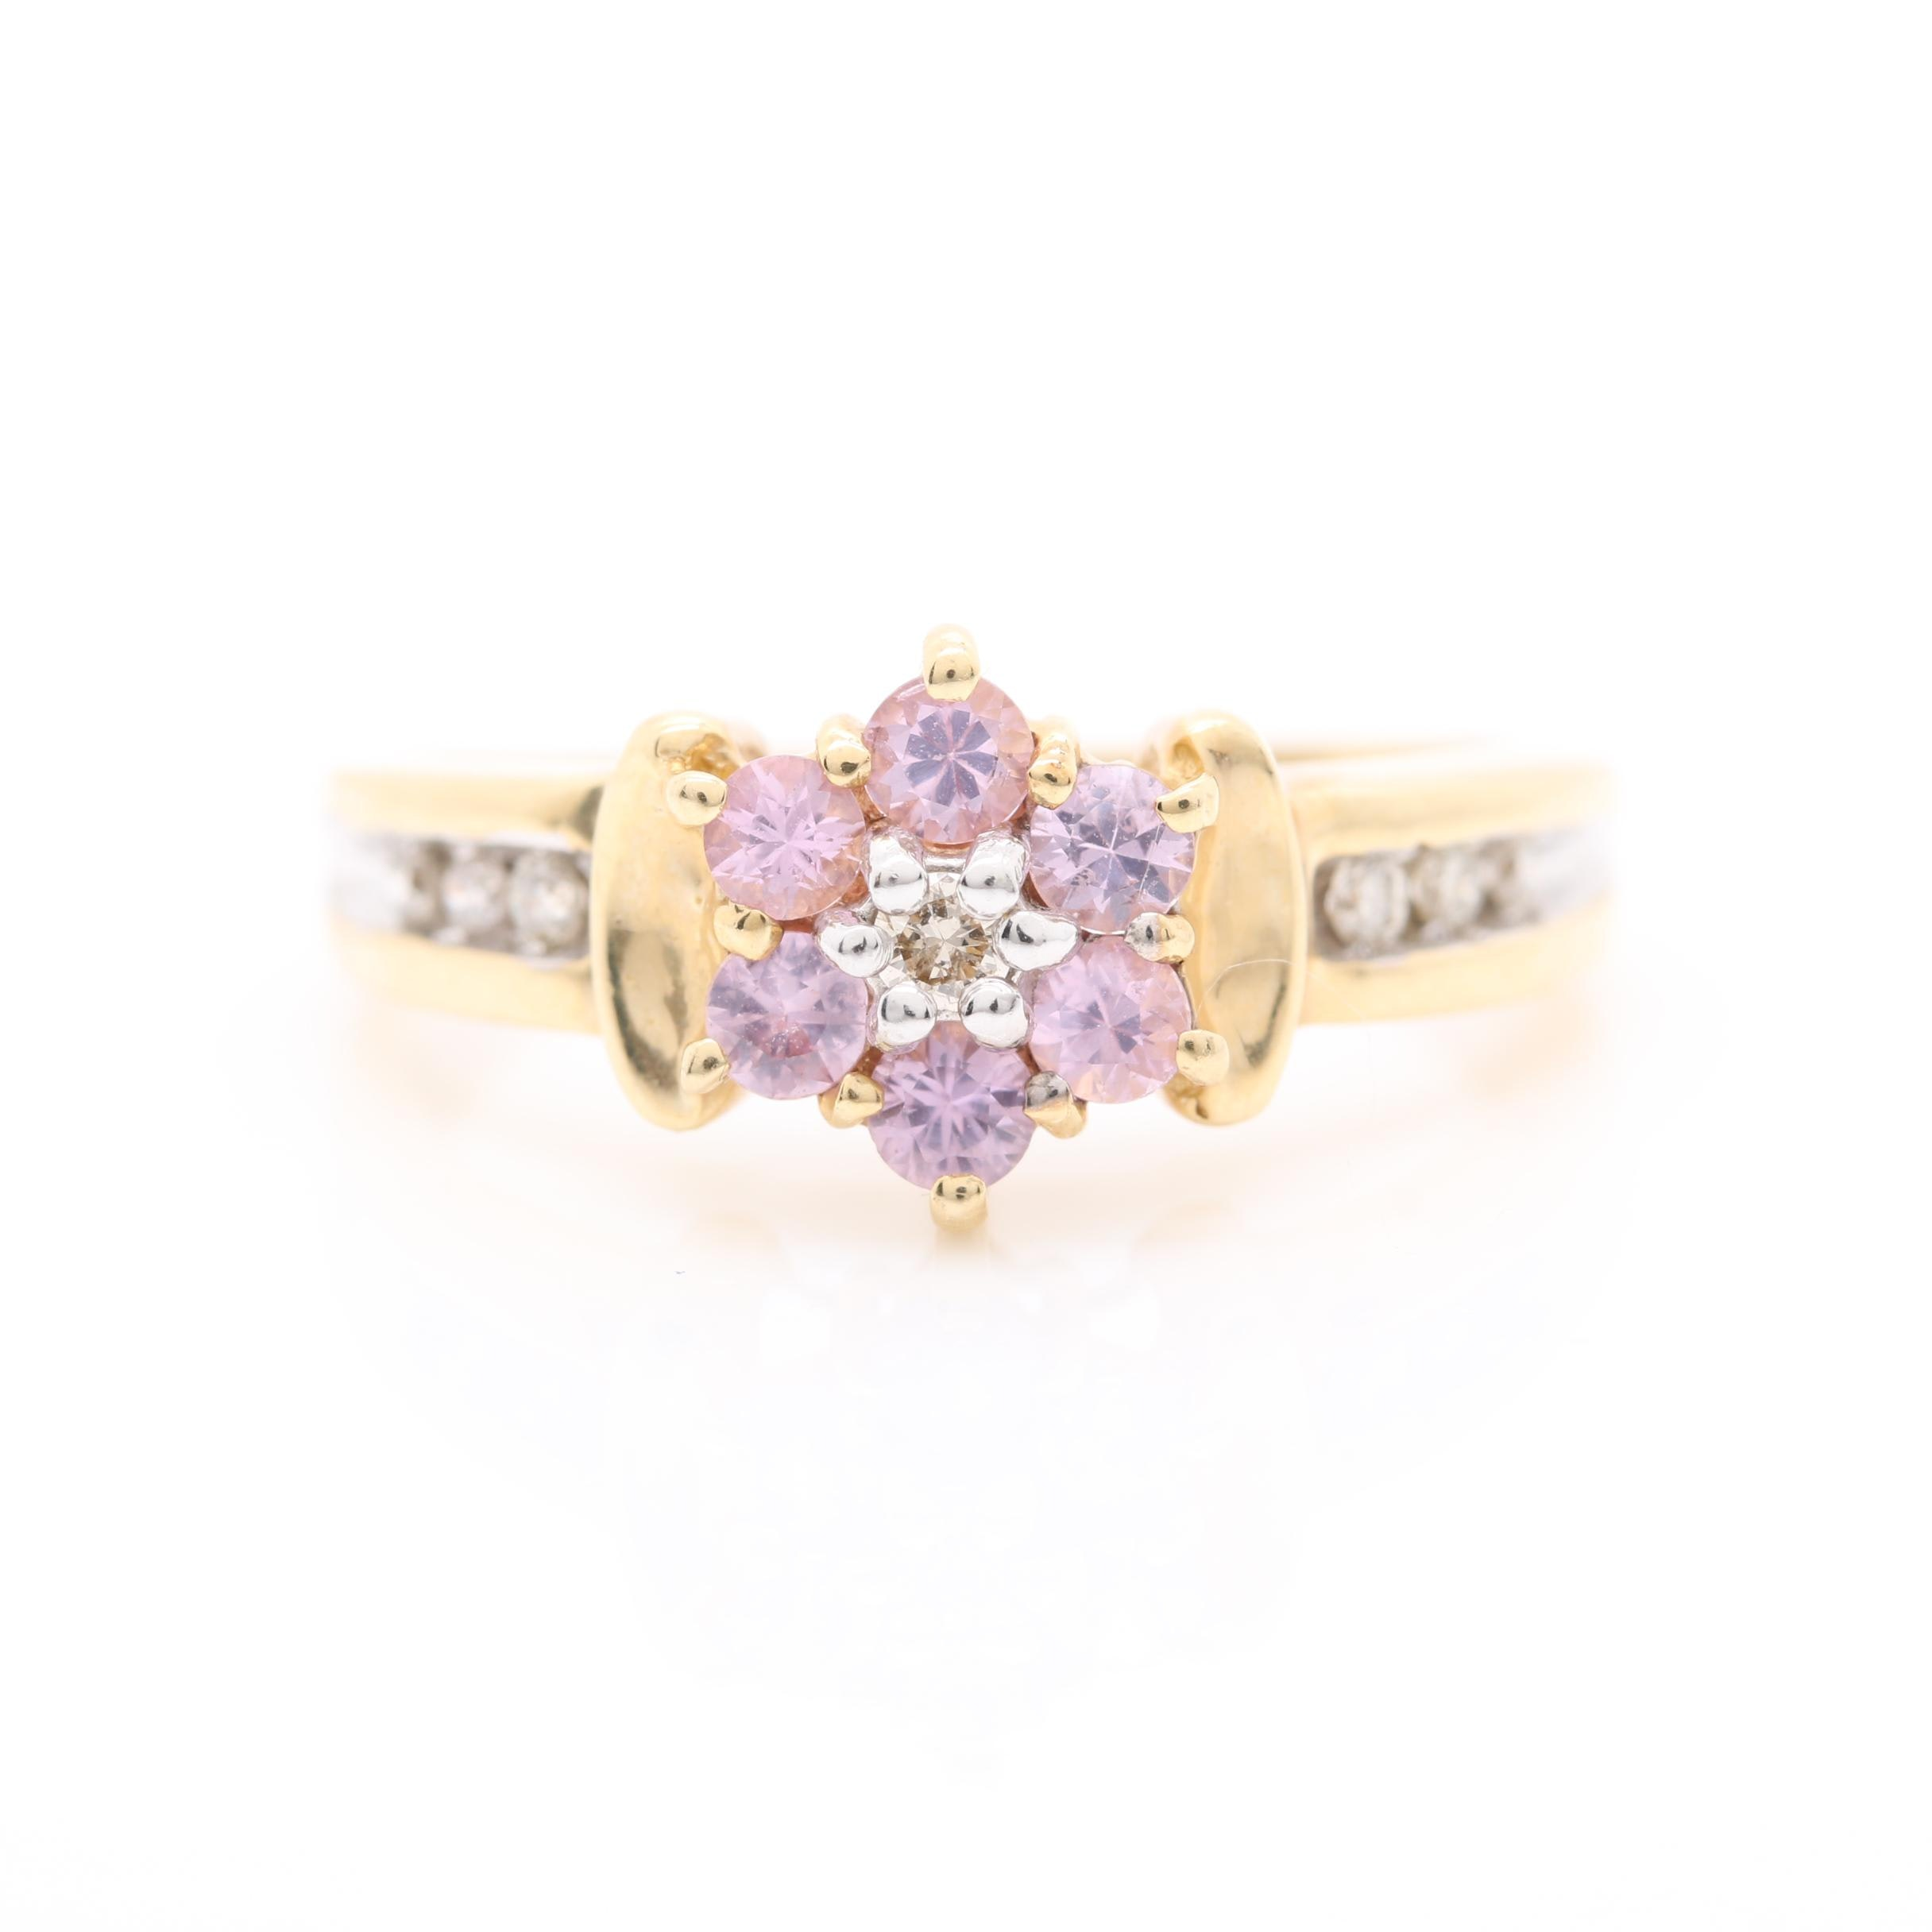 14K Yellow Gold Pink Sapphire and Diamond Ring with 14K White Gold Accents